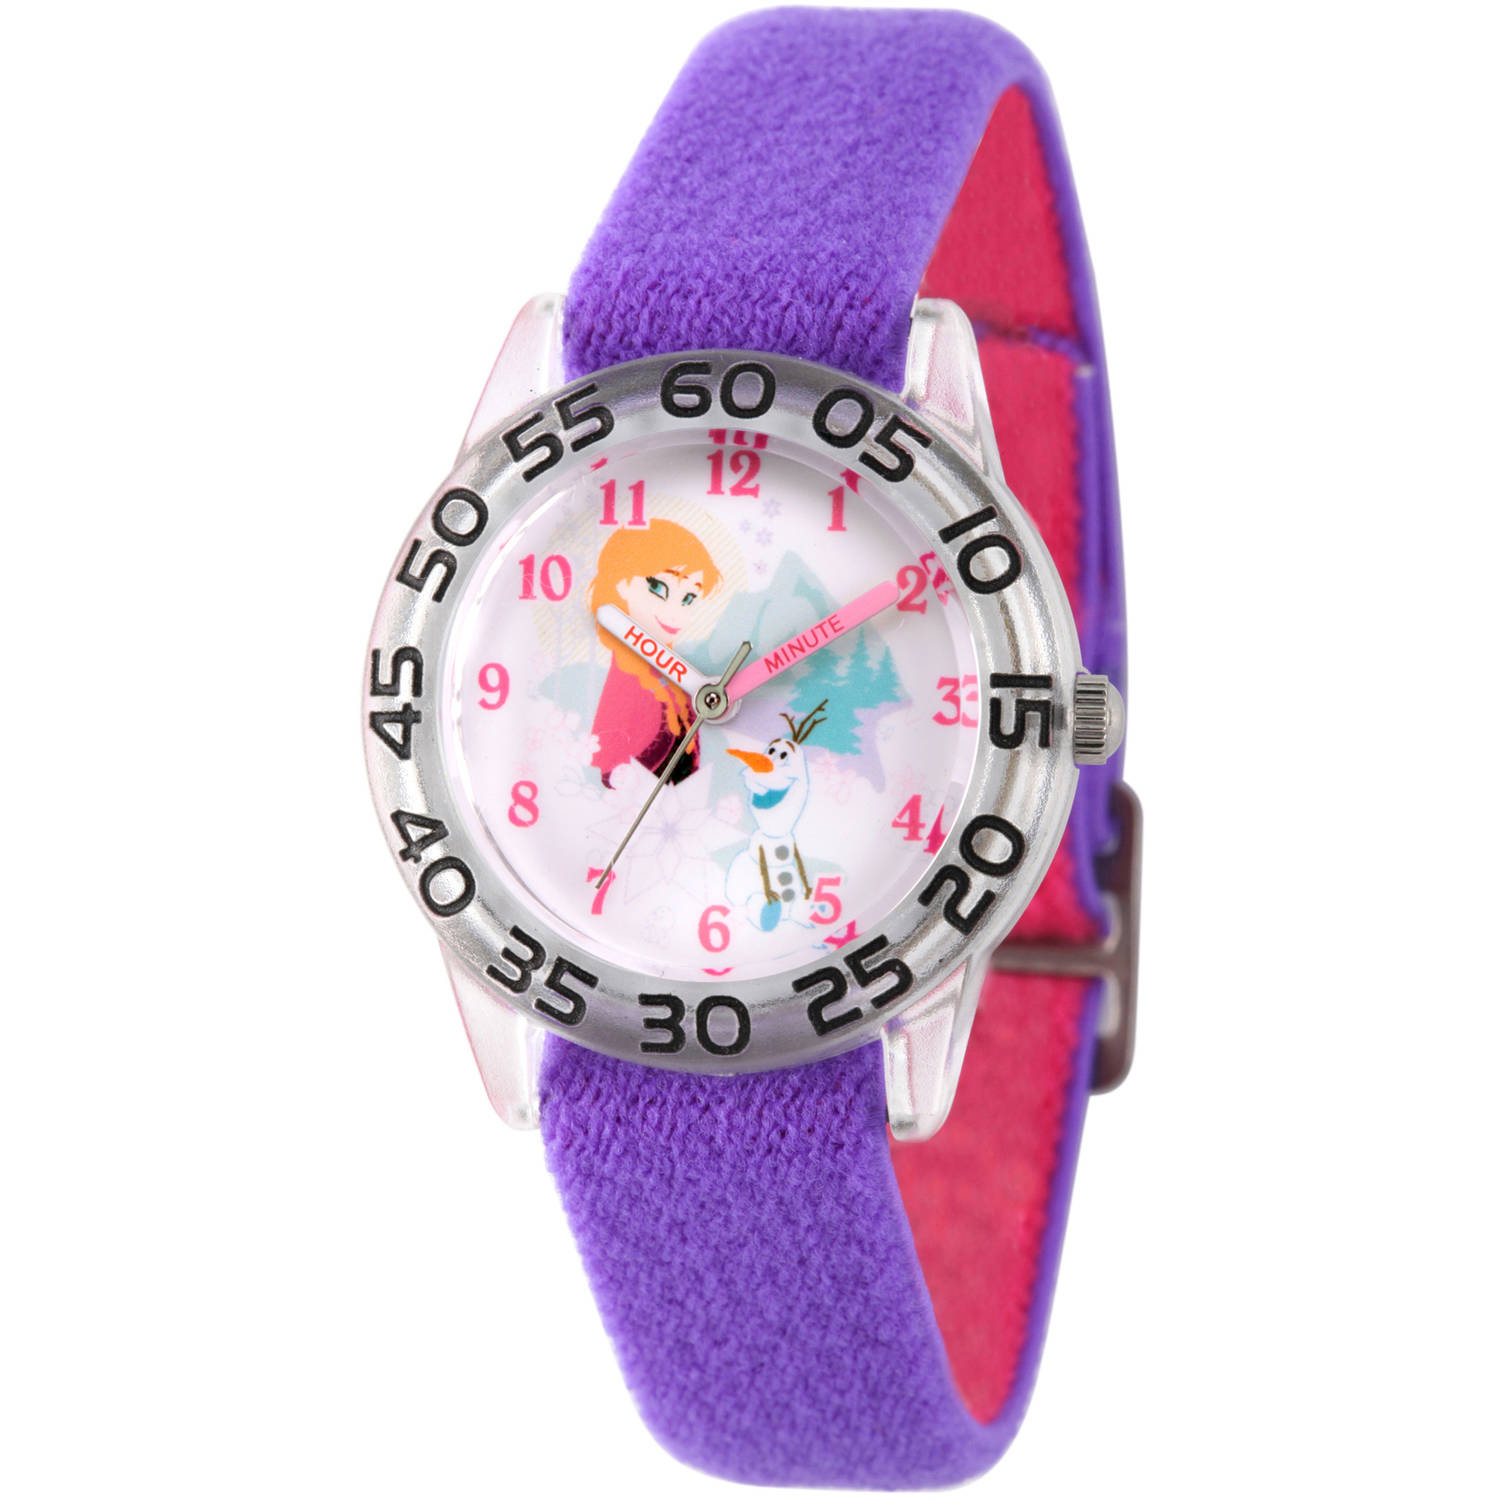 Frozen Olaf and Anna Girls' Clear Plastic Time Teacher Watch, Reversible Purple and Pink Nylon Strap